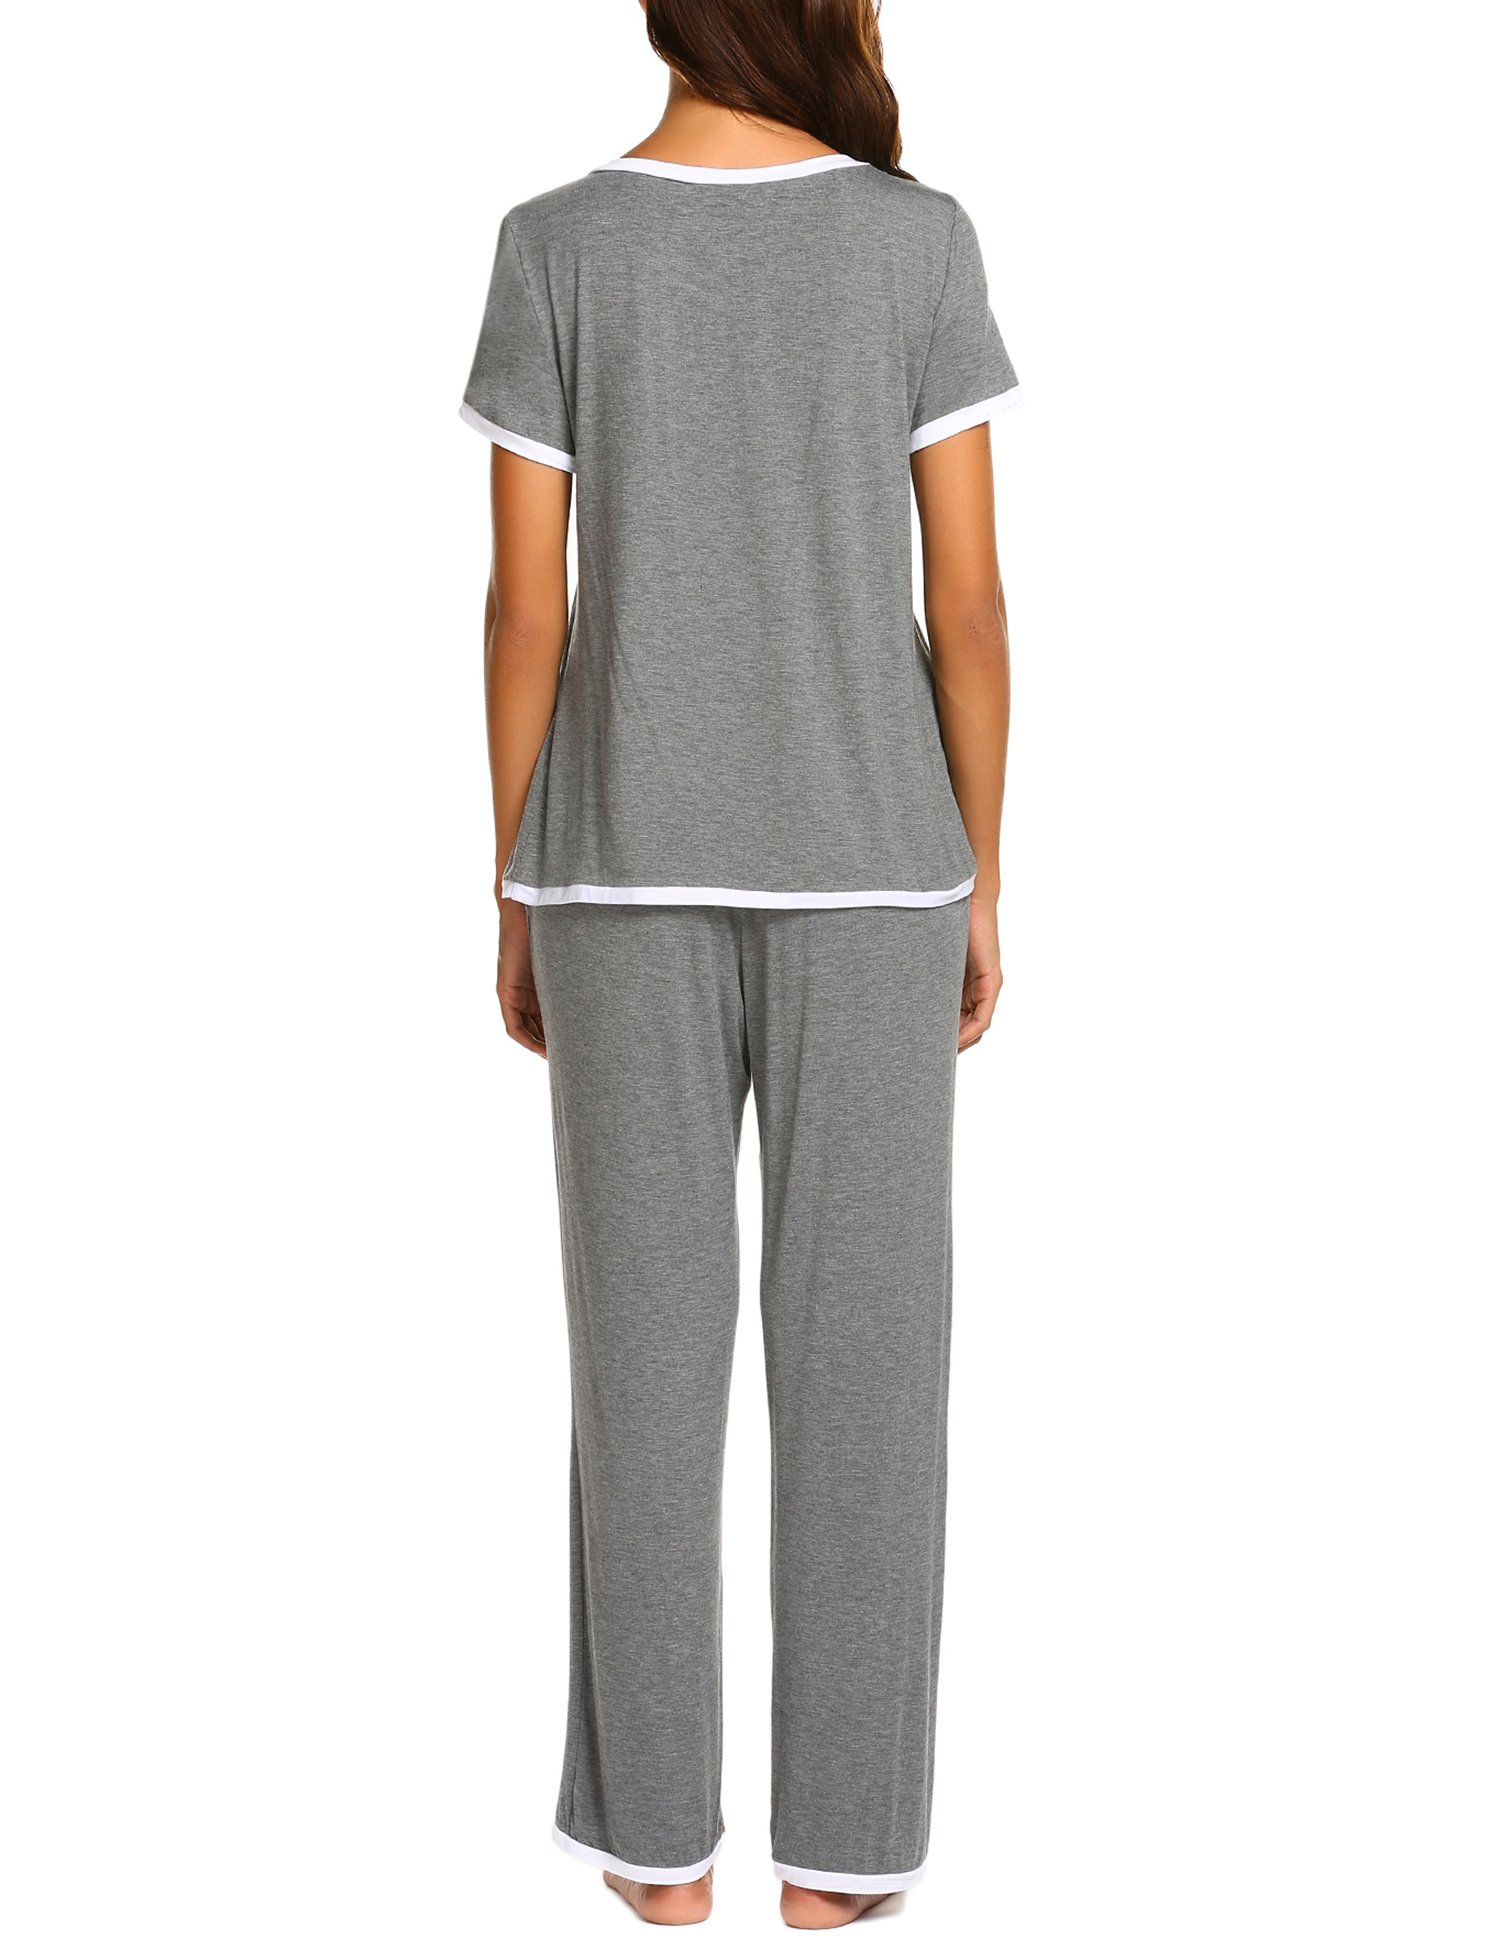 Ekouaer Women Pajamas Set V-Neck Short Sleeve Top and Elastic Waist Long Pants Lounge Sleepwear (Gray XL) by Ekouaer (Image #2)